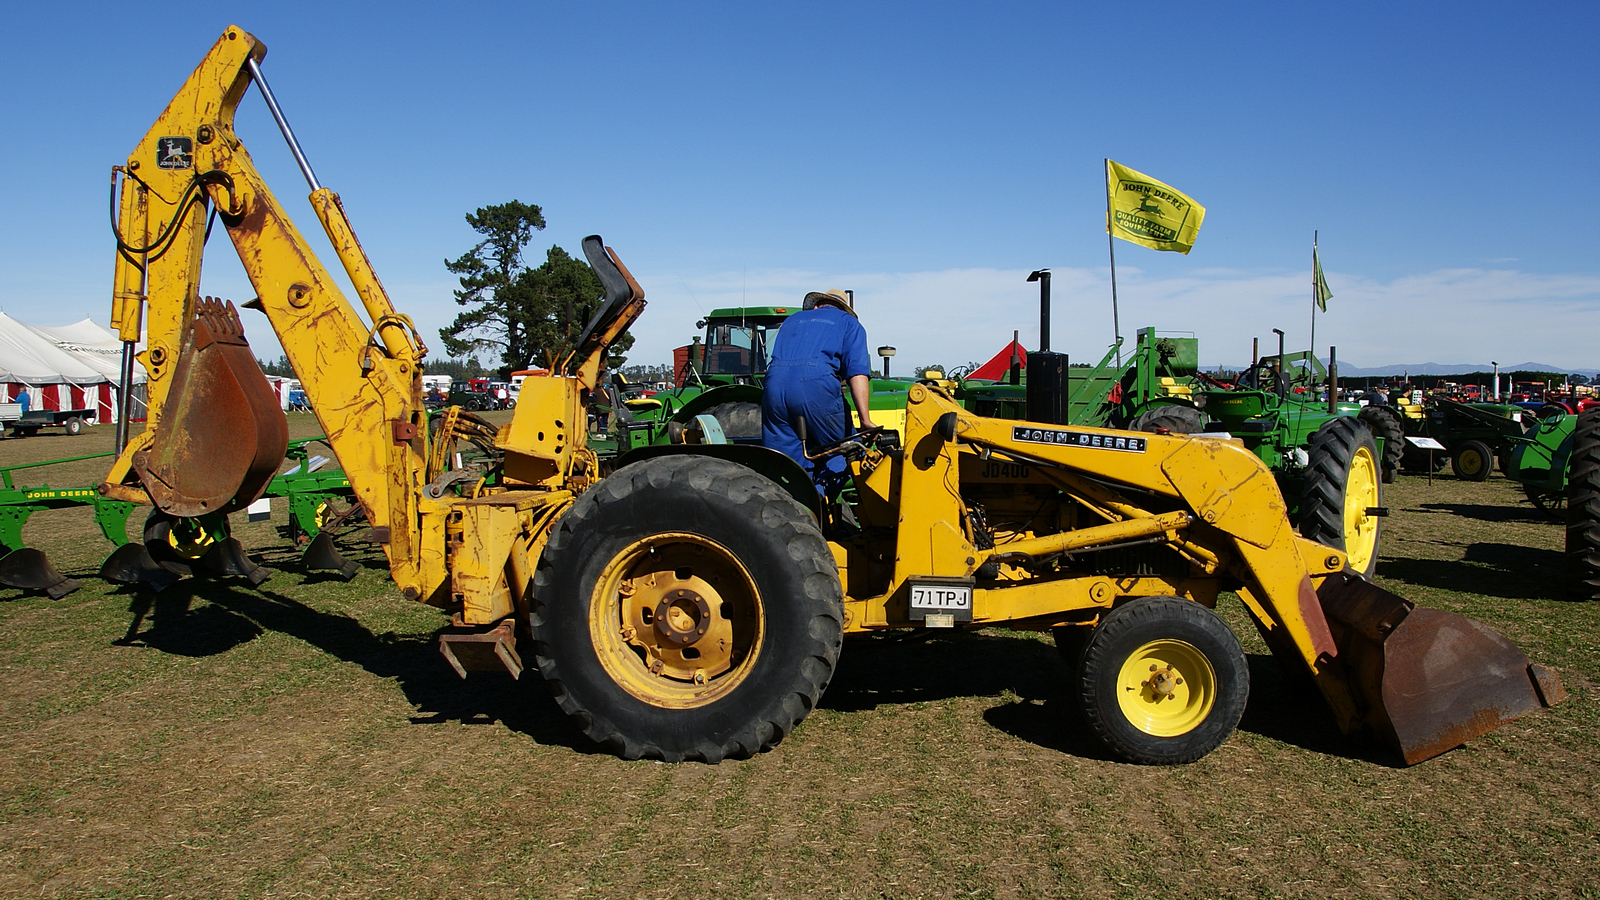 1980 JOHN DEERE 400 INDUSTRIAL tractor. | Seen at the ...